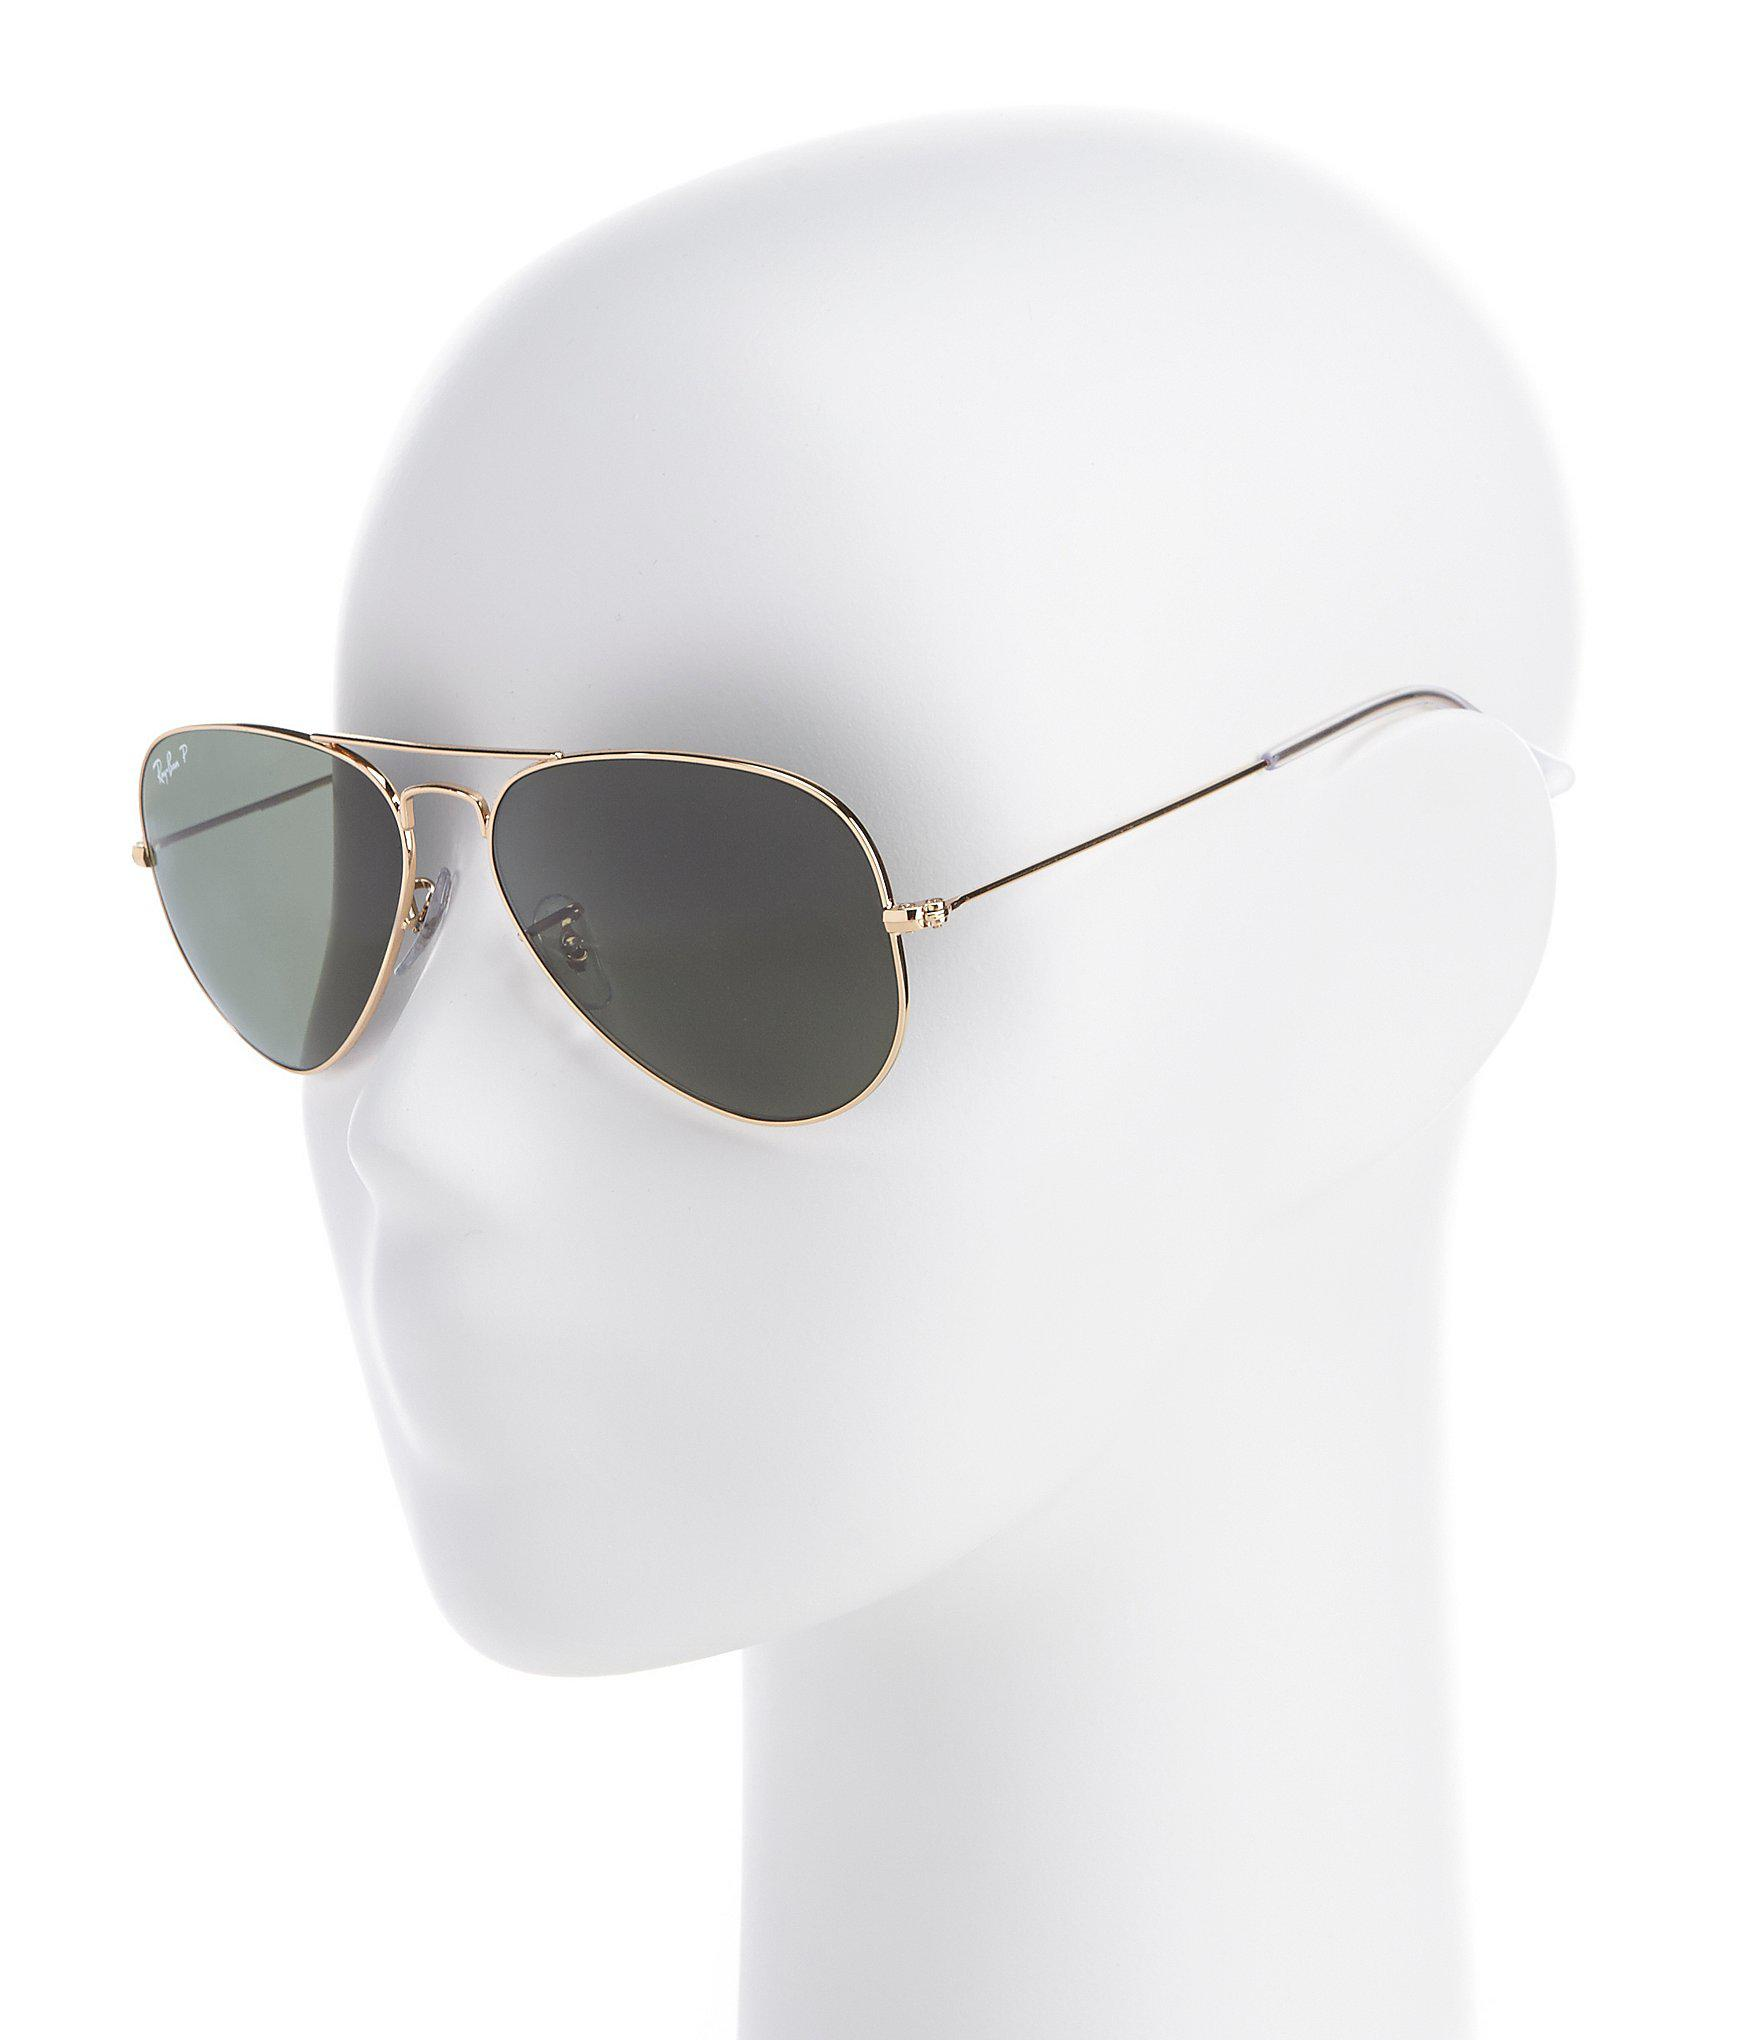 4768574a9d1a Lyst - Ray-Ban Polarized Metal Uv Protection Aviator Sunglasses in ...